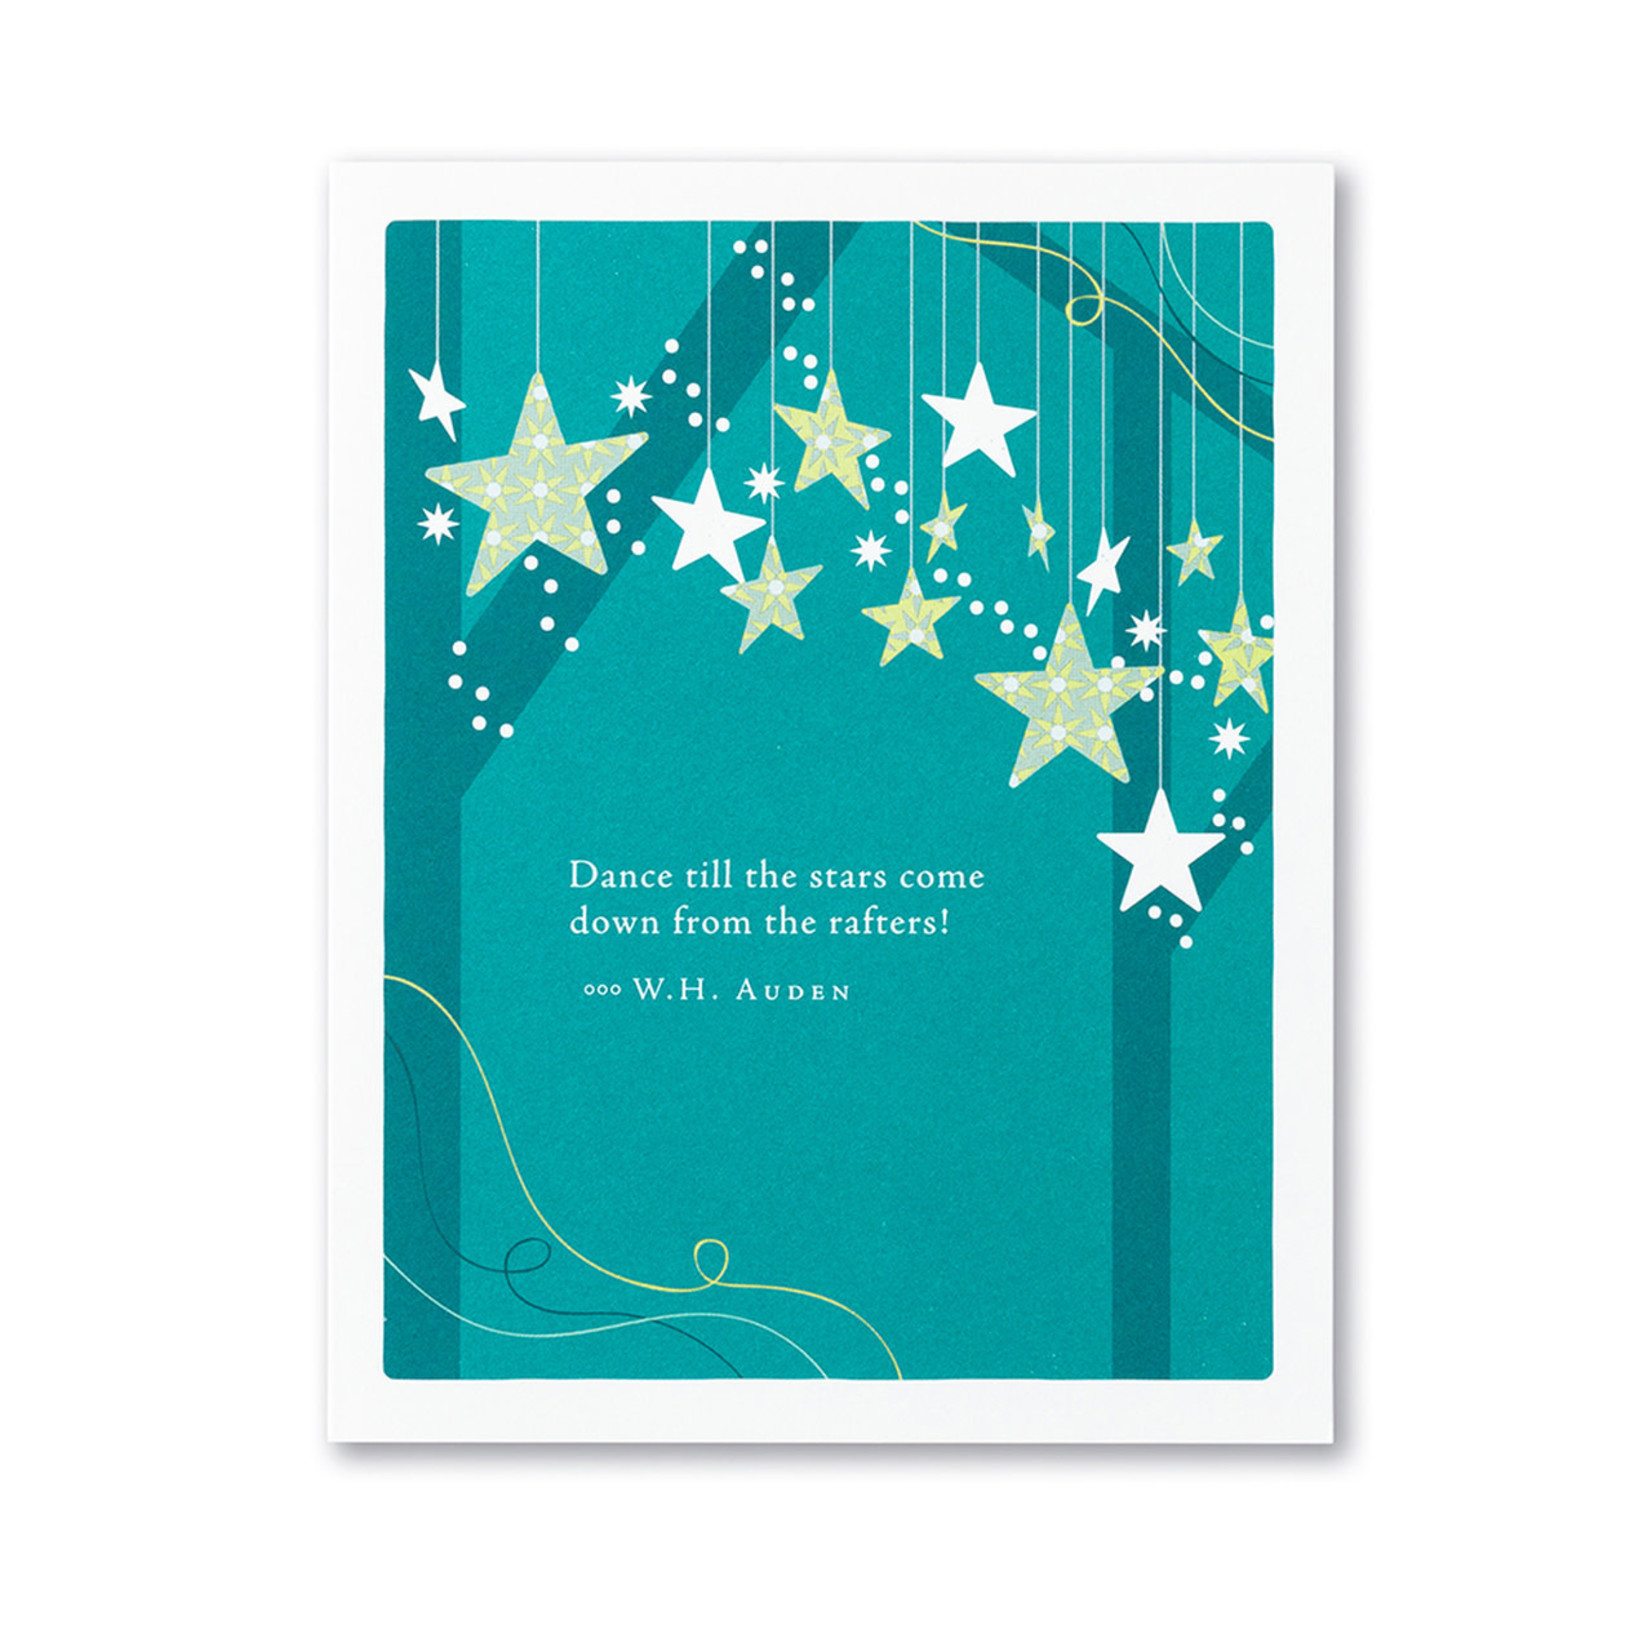 DANCE TILL THE STARS COME DOWN CARD